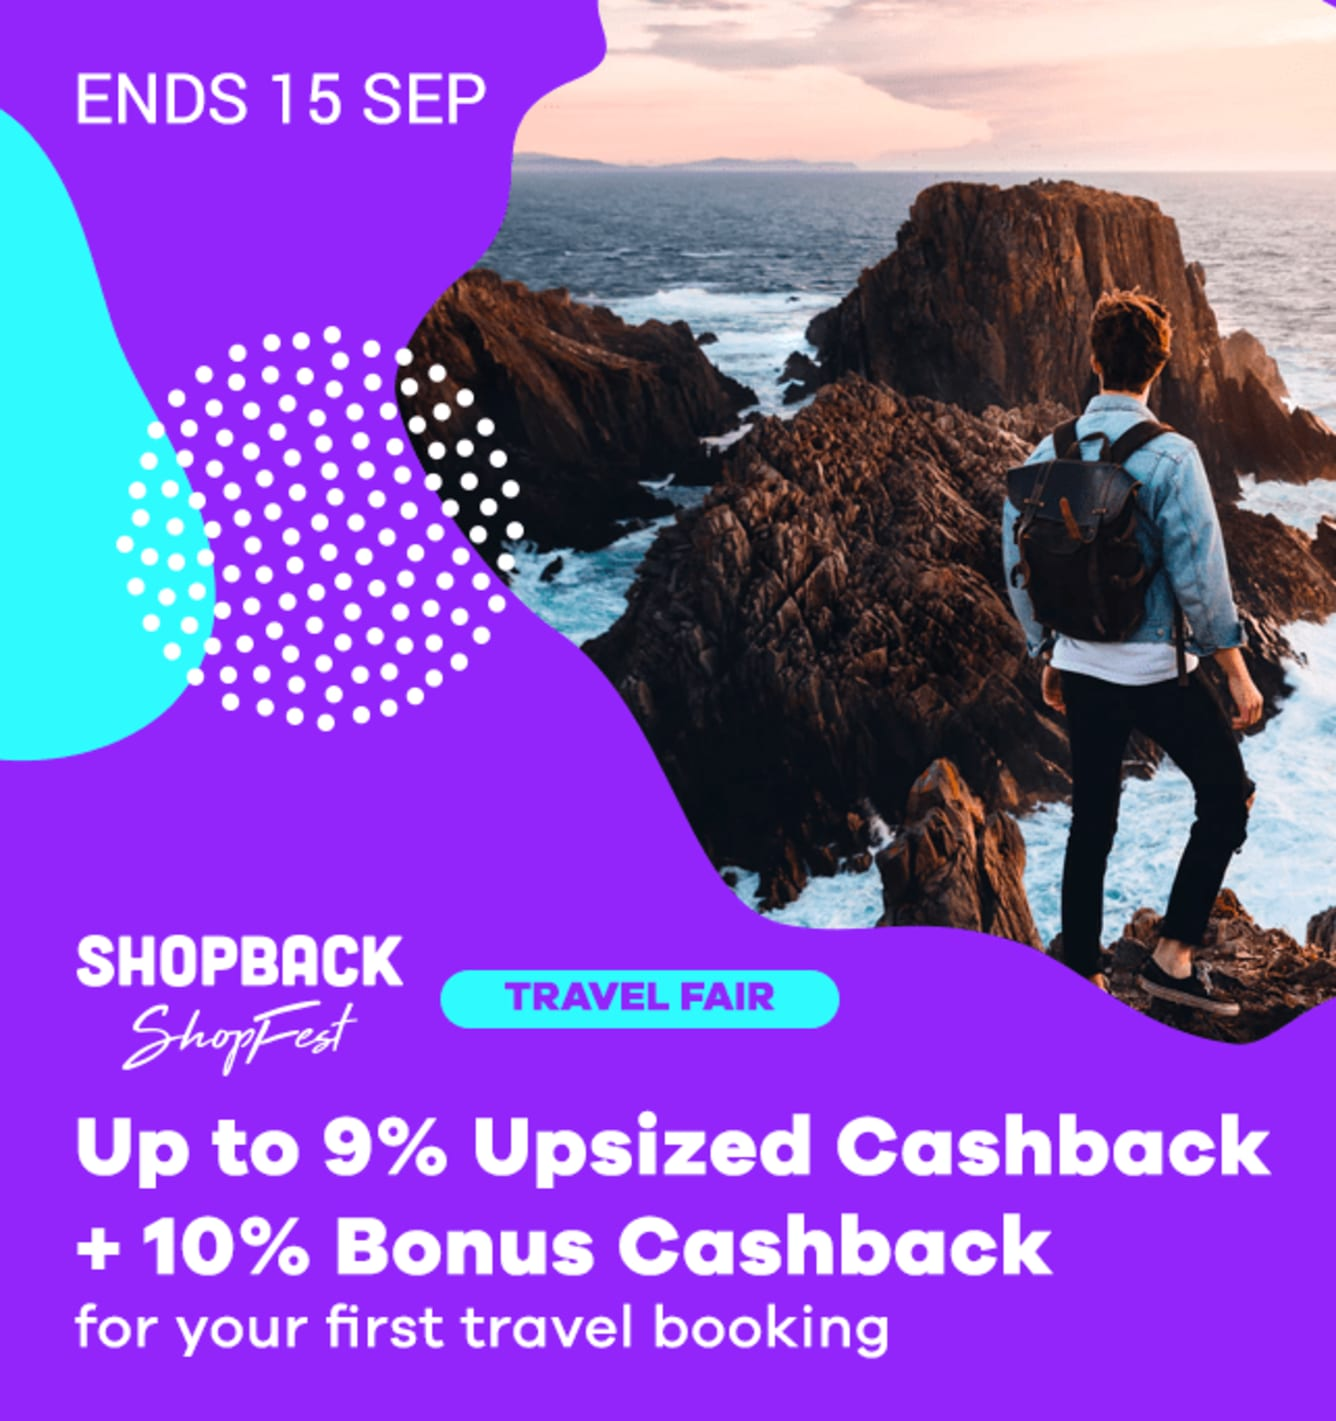 Travel Fair Up to 9% Upsized Cashback